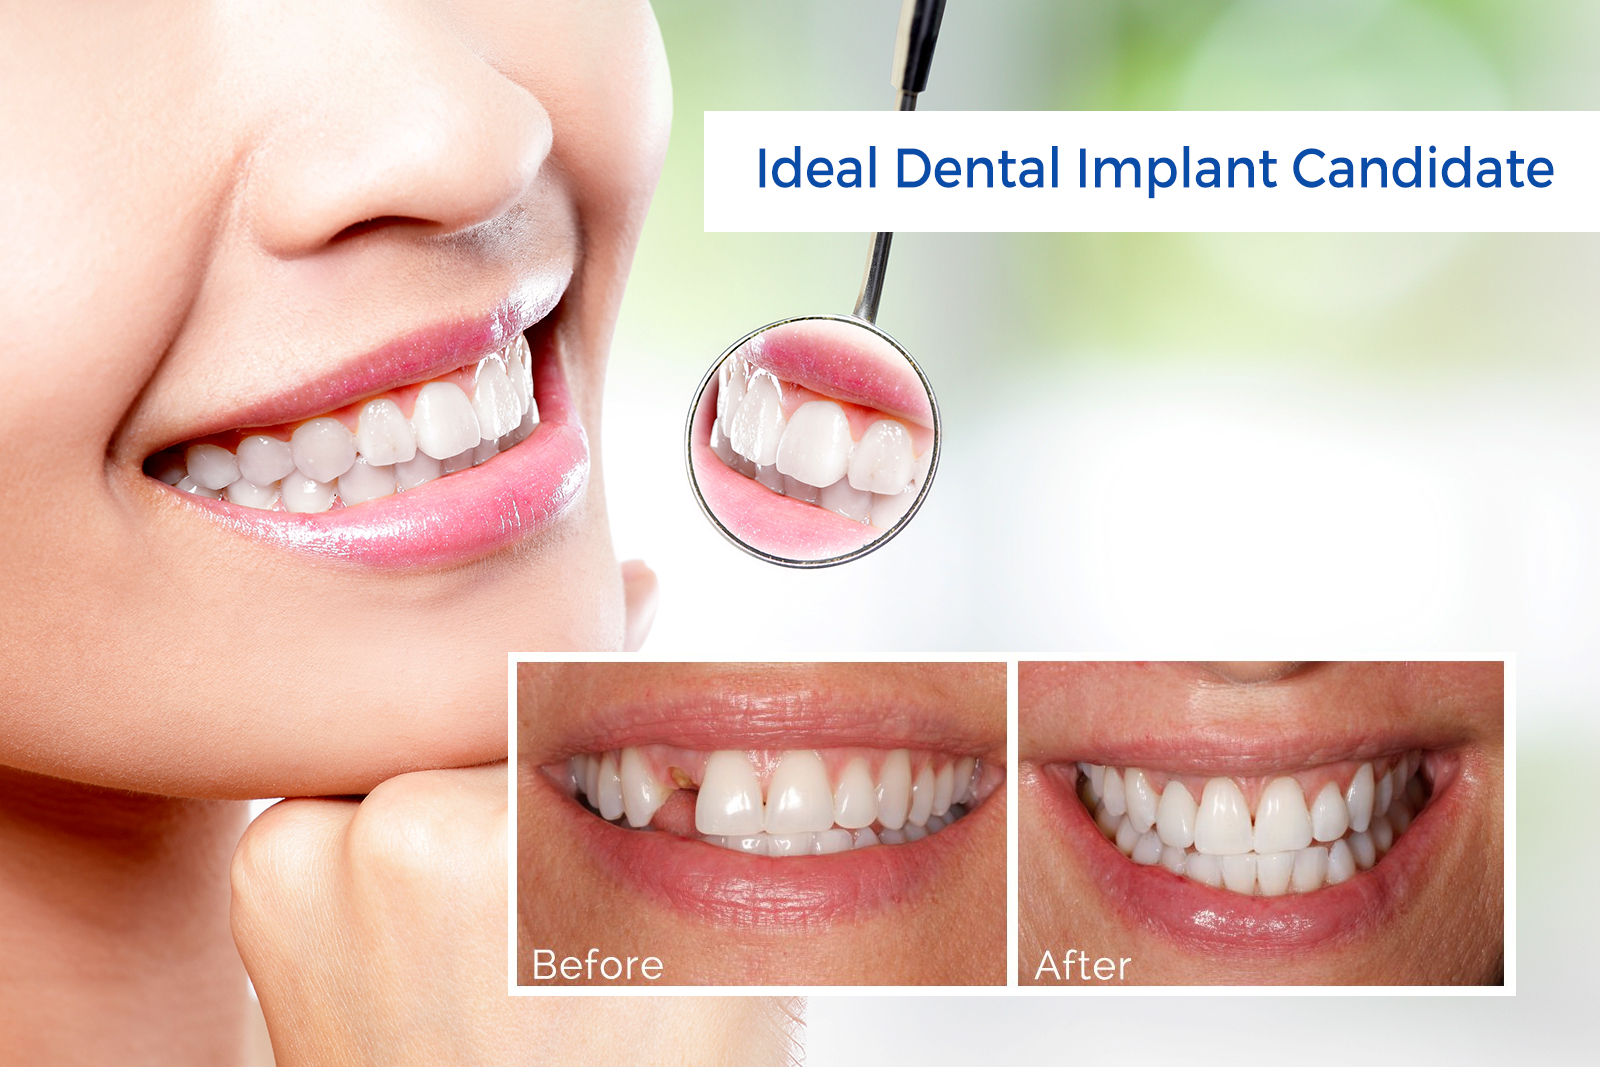 Does Your Dentist Suggest To Perform Dental Implants?